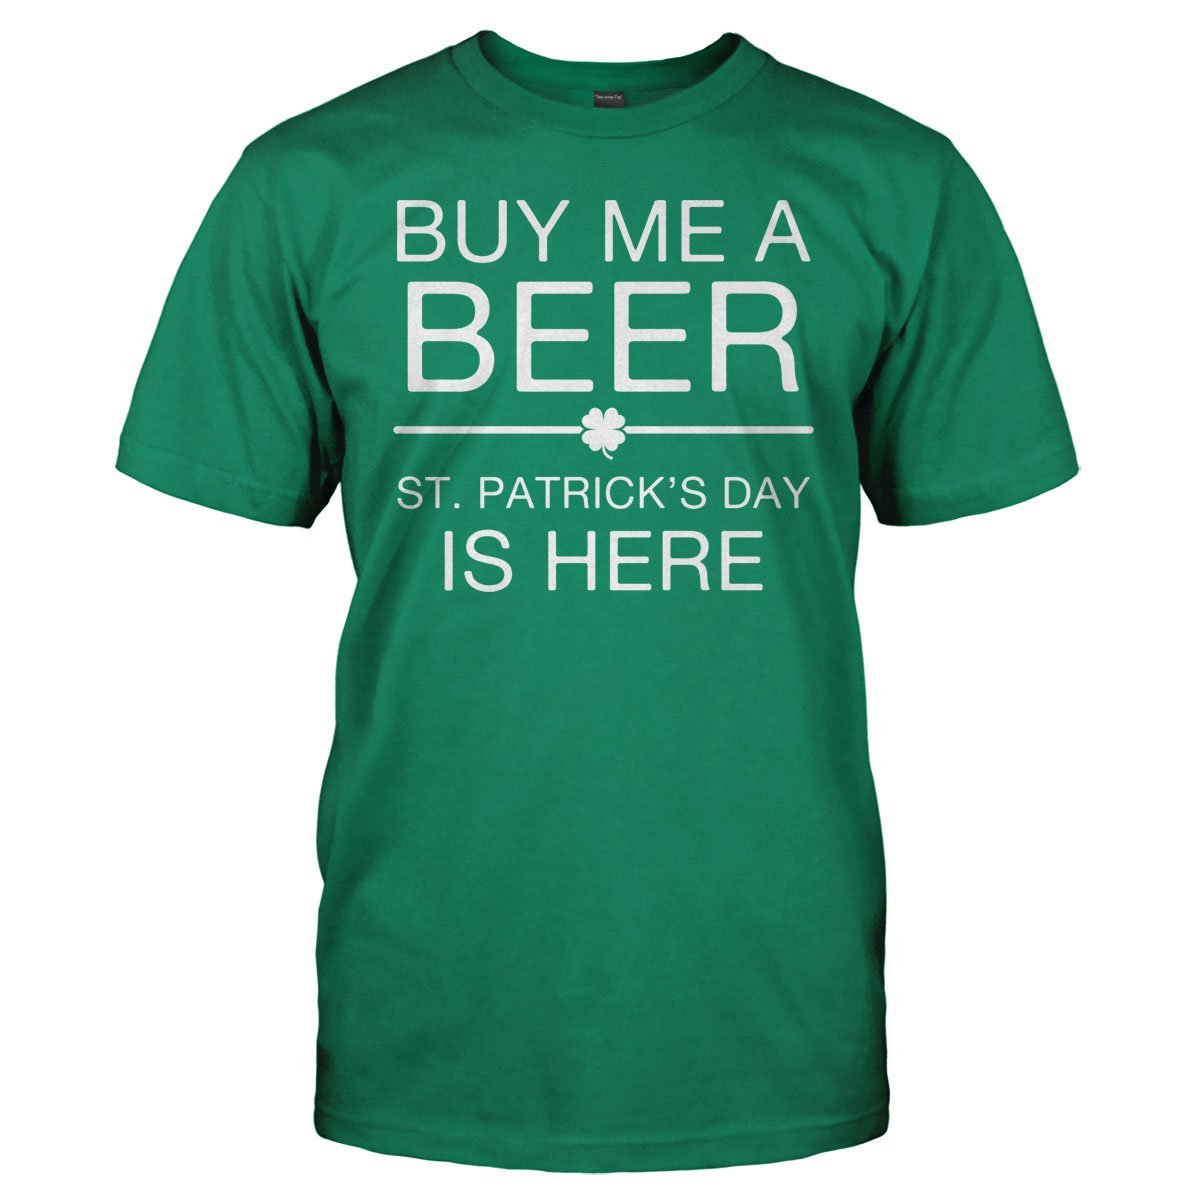 Buy Me A Beer, St. Patrick's Day Is Here - T Shirt